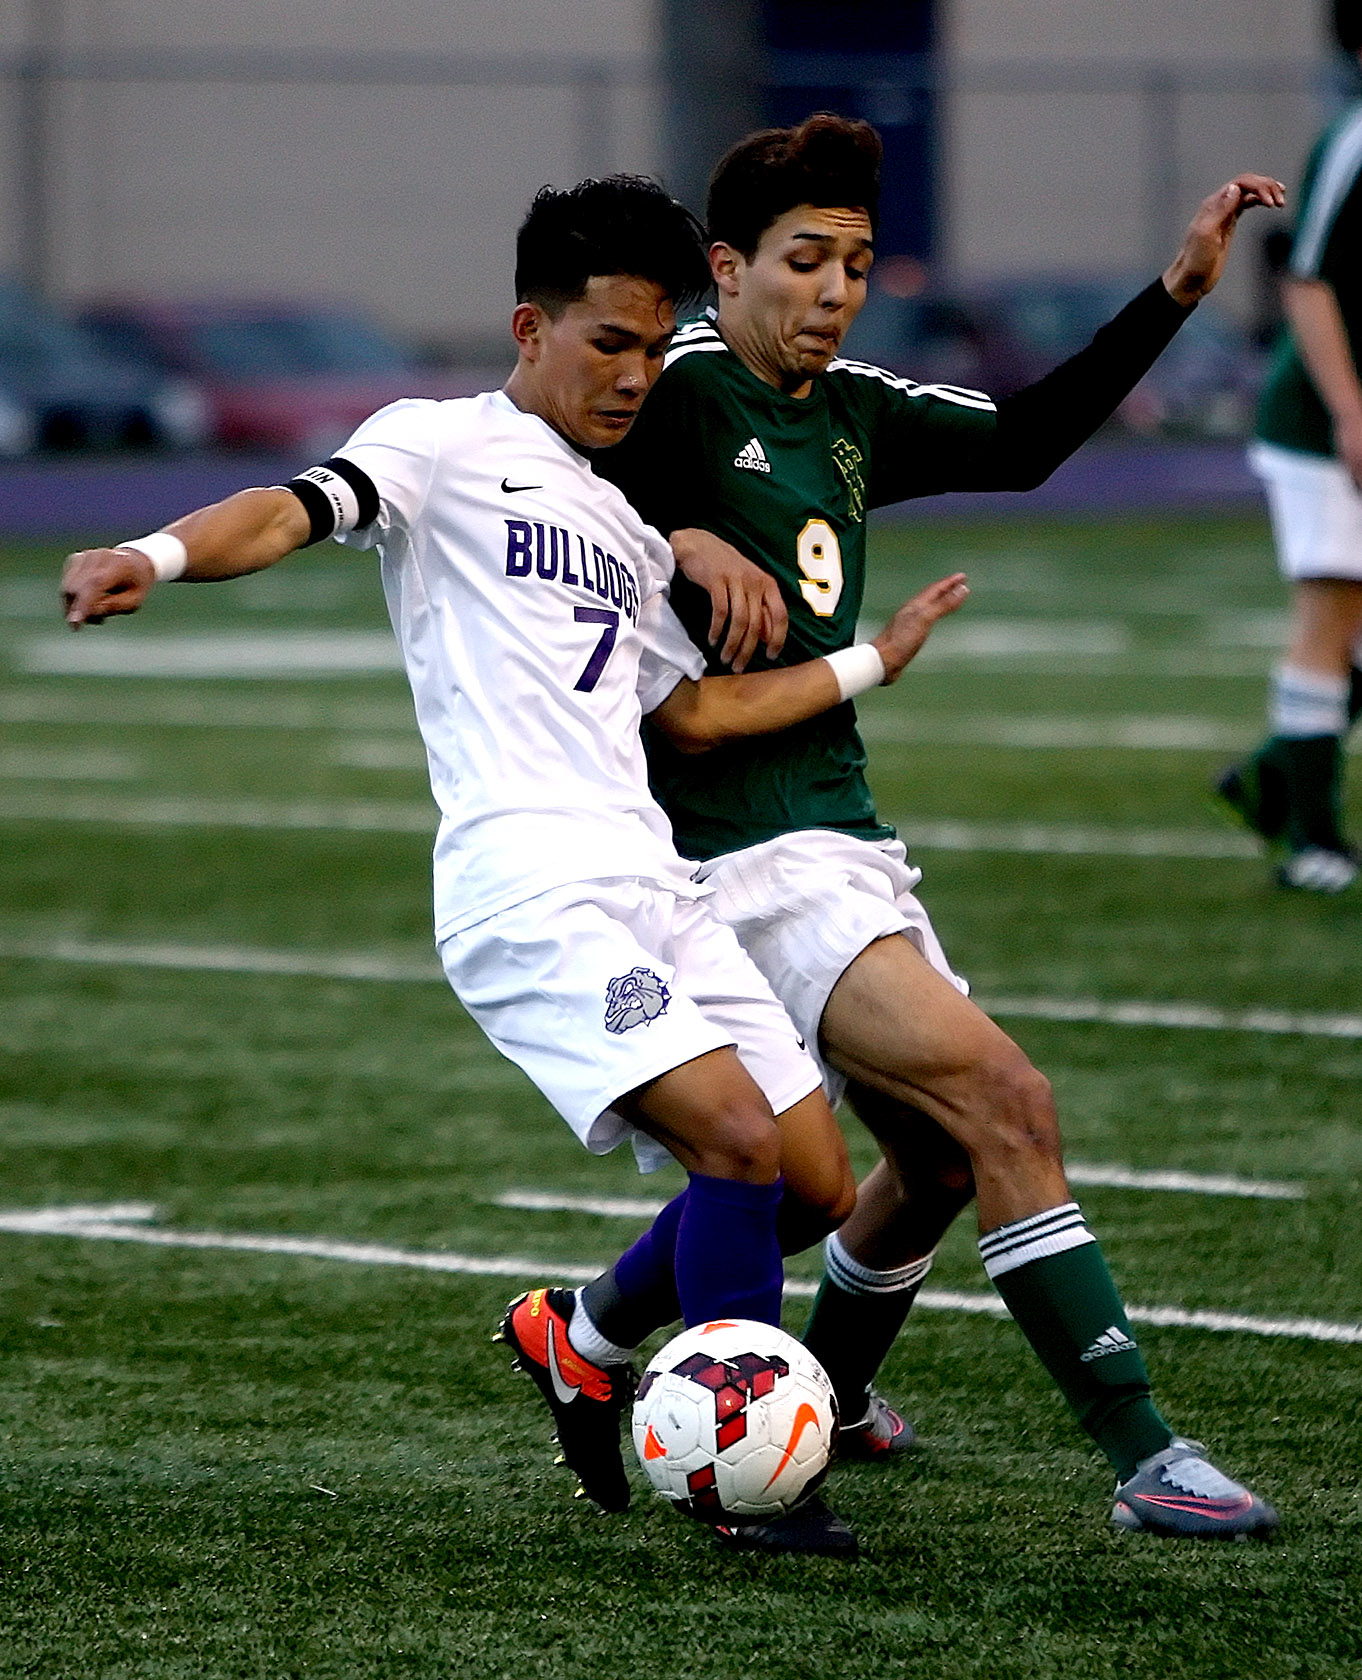 Bik Ceu of Foster gets his foot on the ball against the pressure from Foss's Jacob Rodriguez.